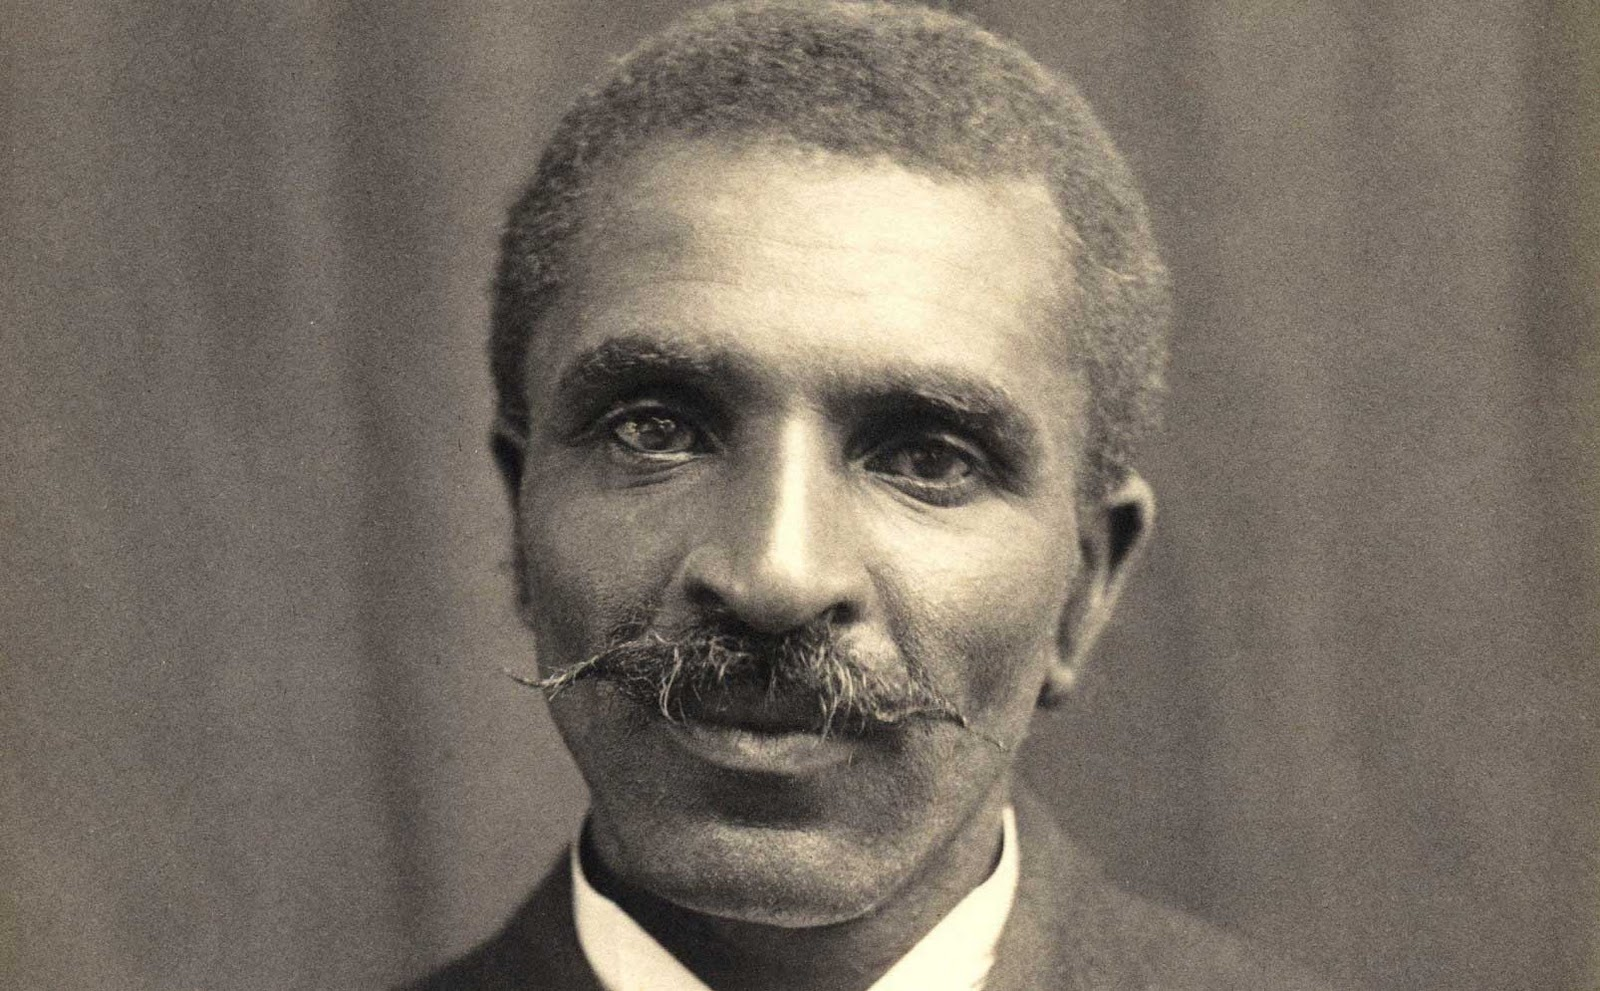 The Imagination of George Washington Carver